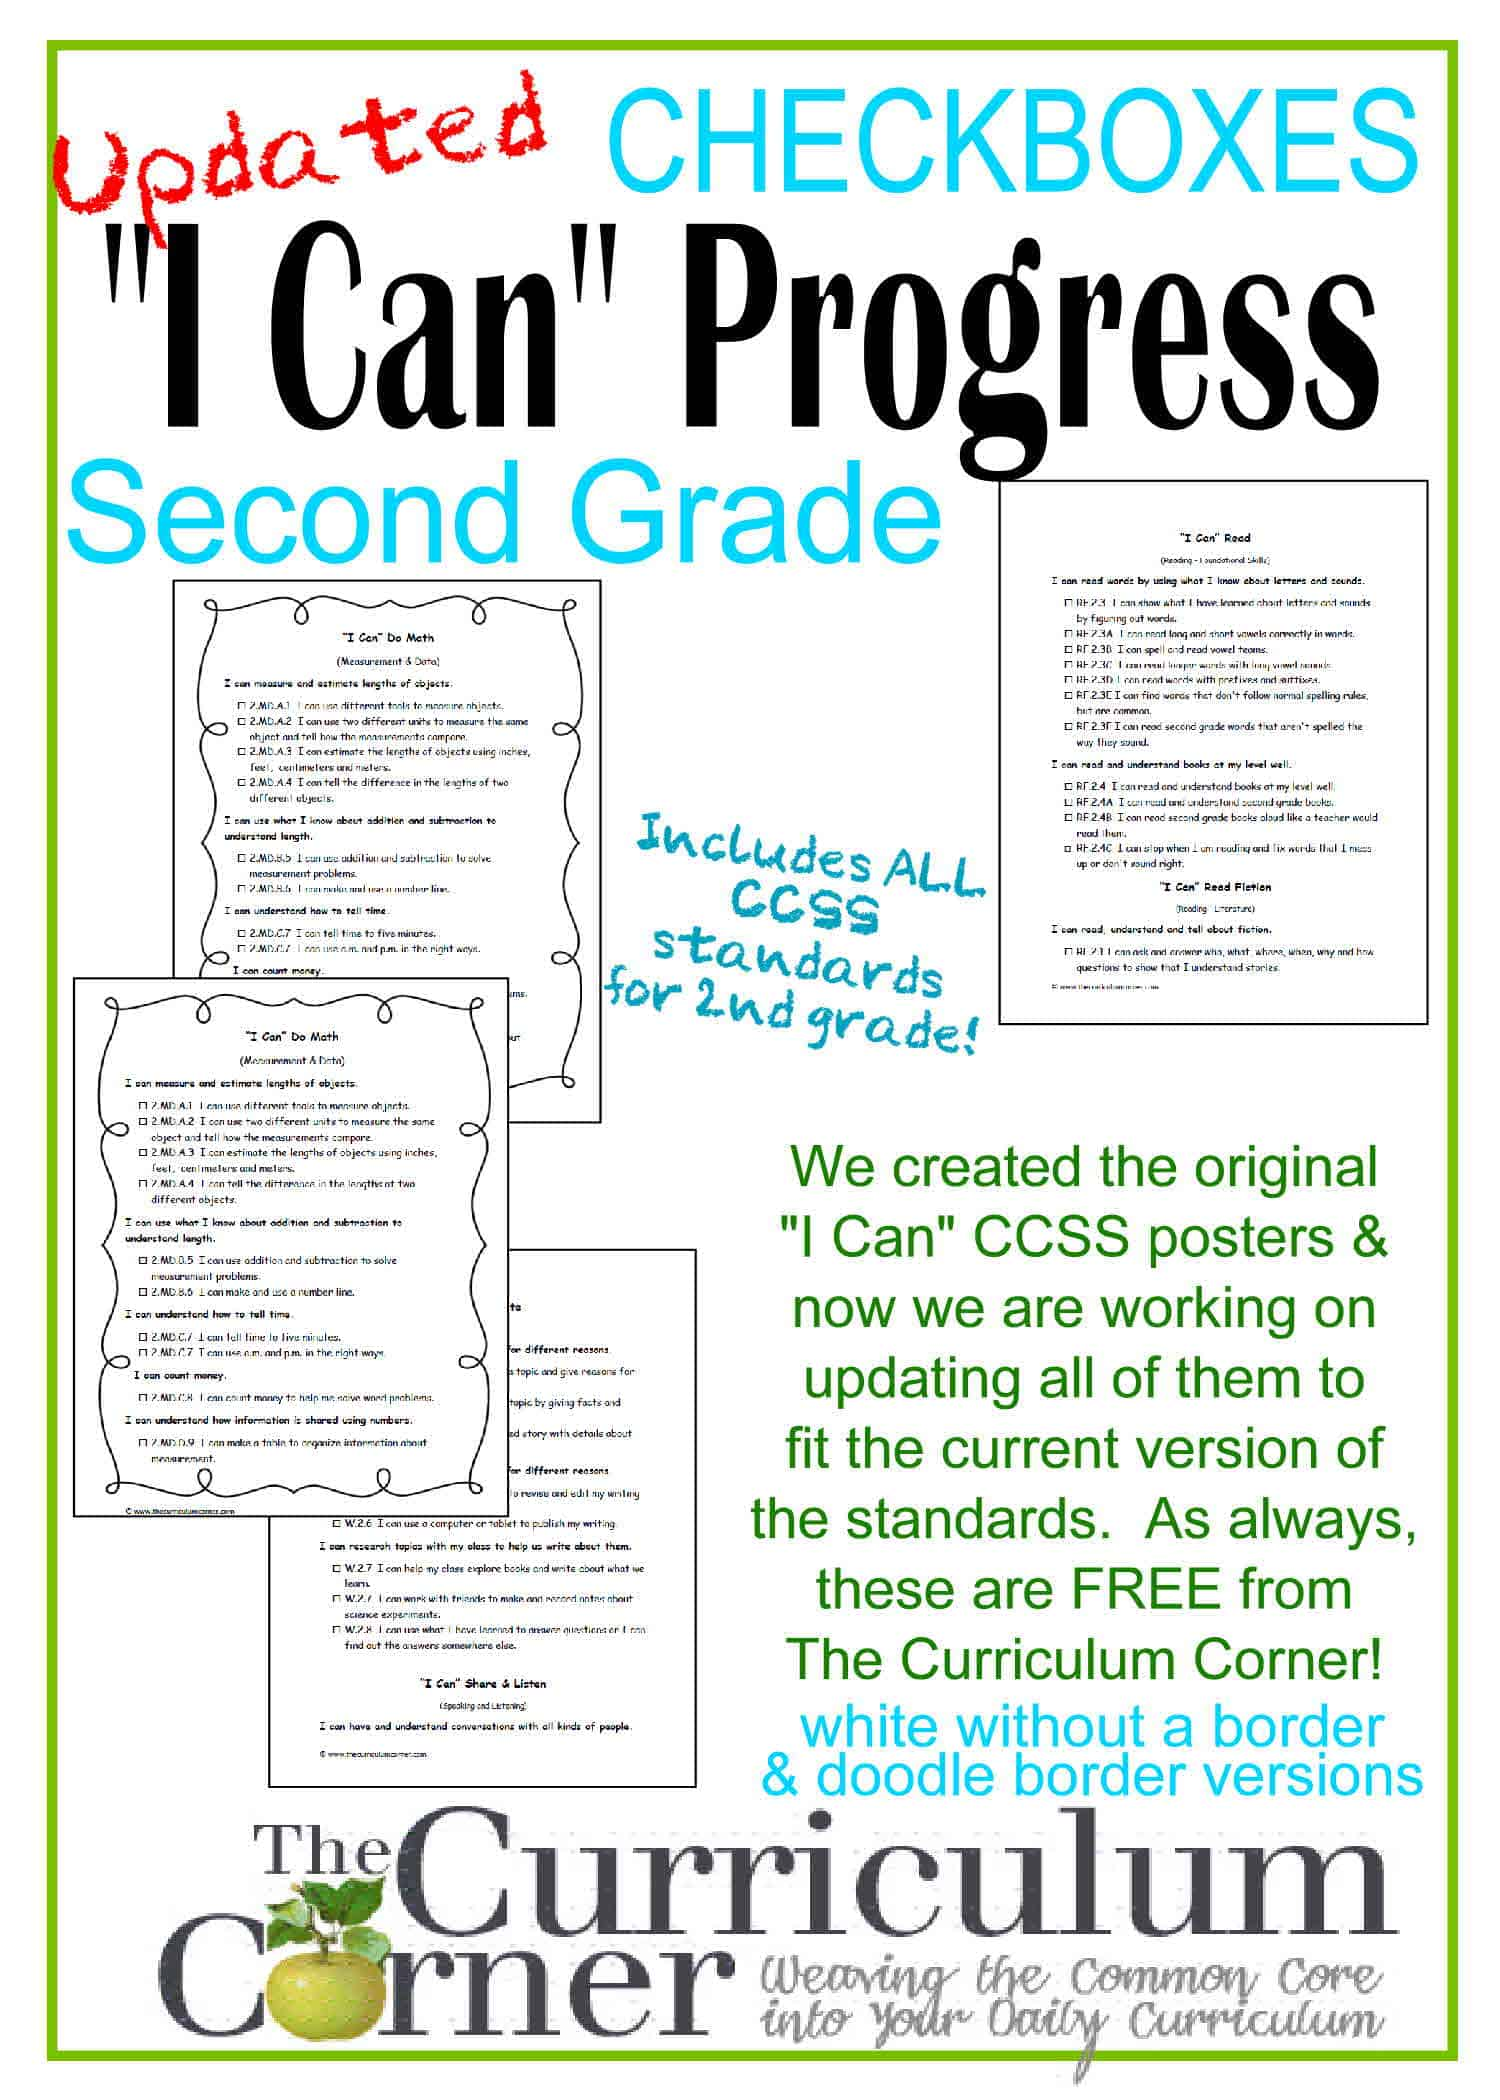 """Updated 2nd Grade """"I Can"""" CCSS Statements Progress Checkboxes"""